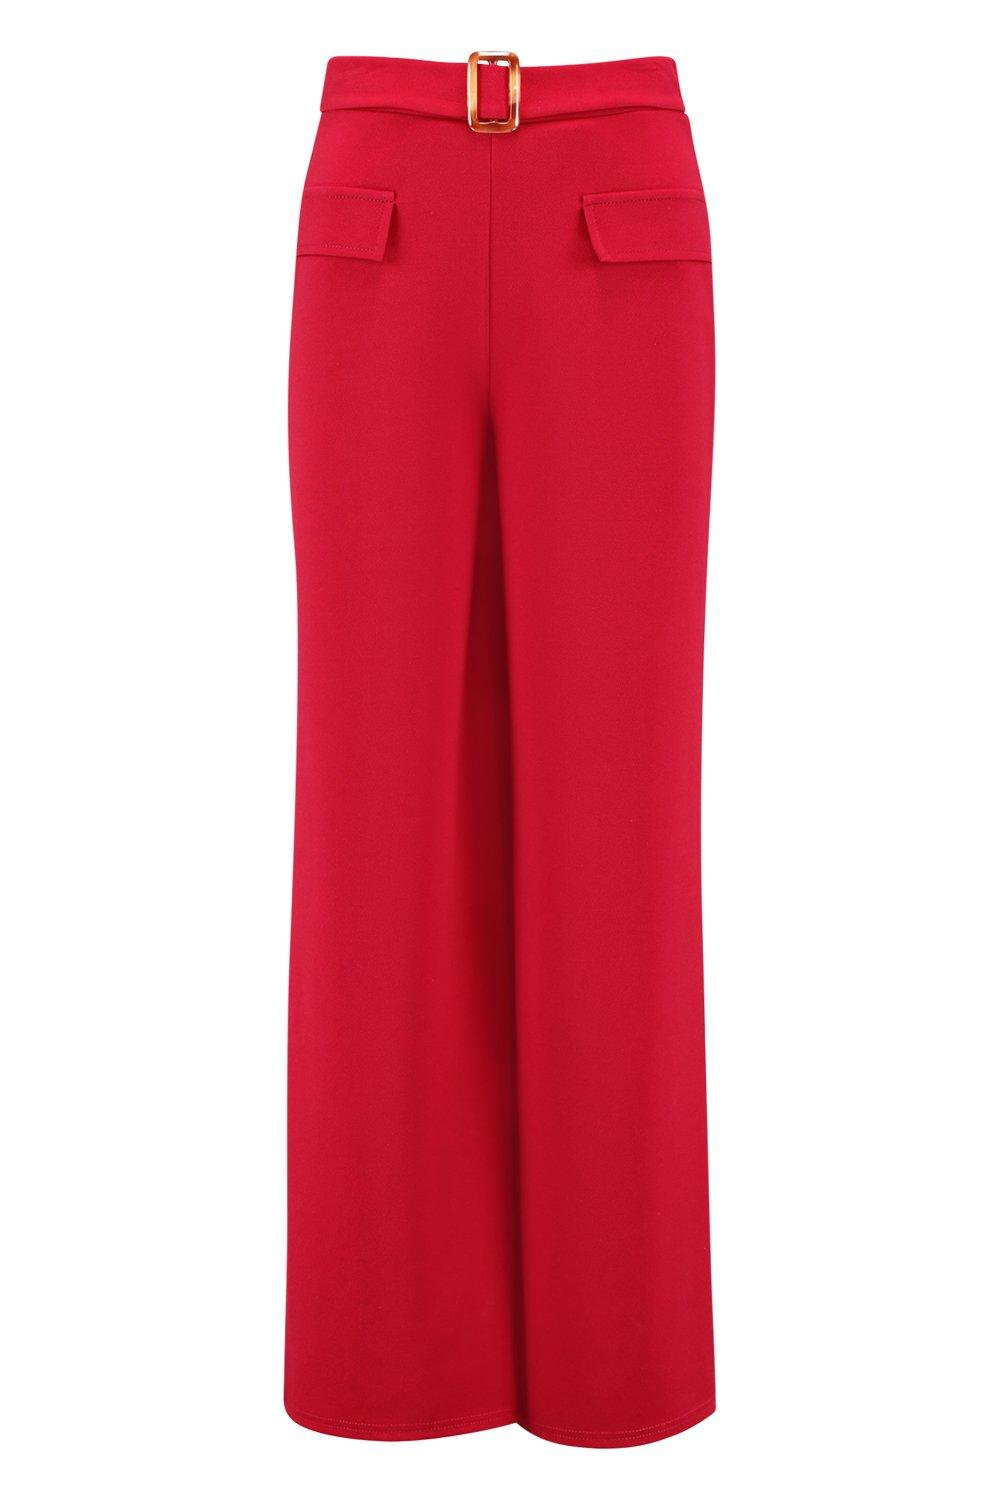 berry Belt Pocket Front Horn Trousers Mock Leg Wide UqUH8BaSw